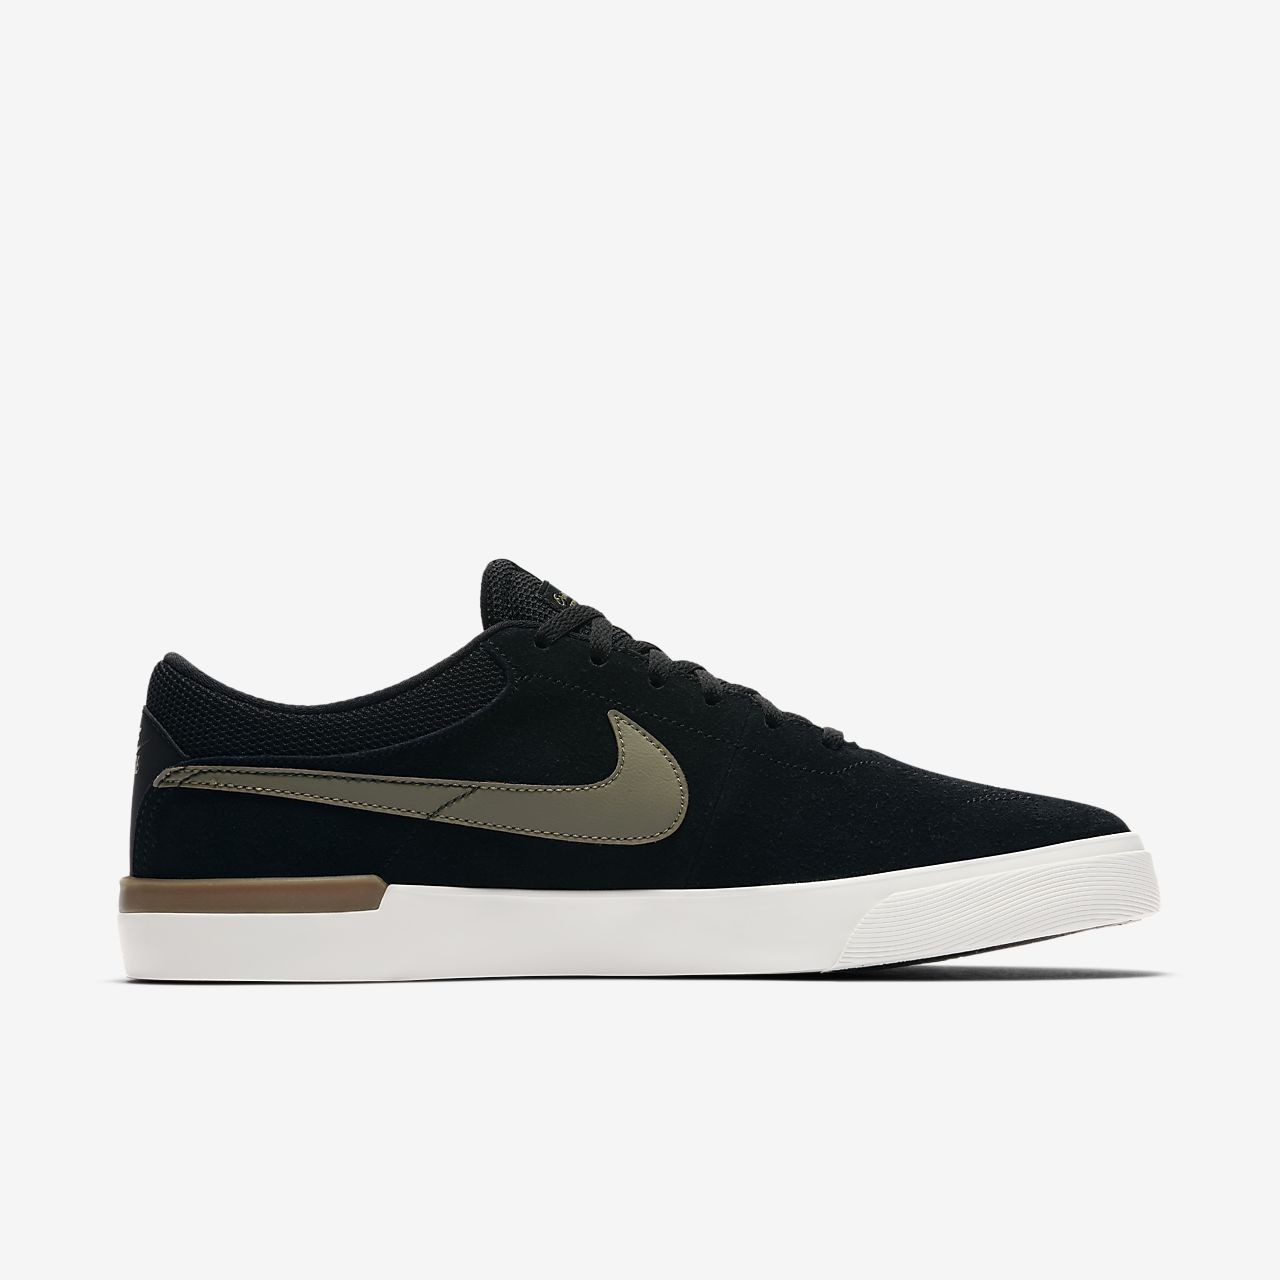 Nike SB Koston Hypervulc Men's Skateboarding Shoes Black/Grey/White eU9277F